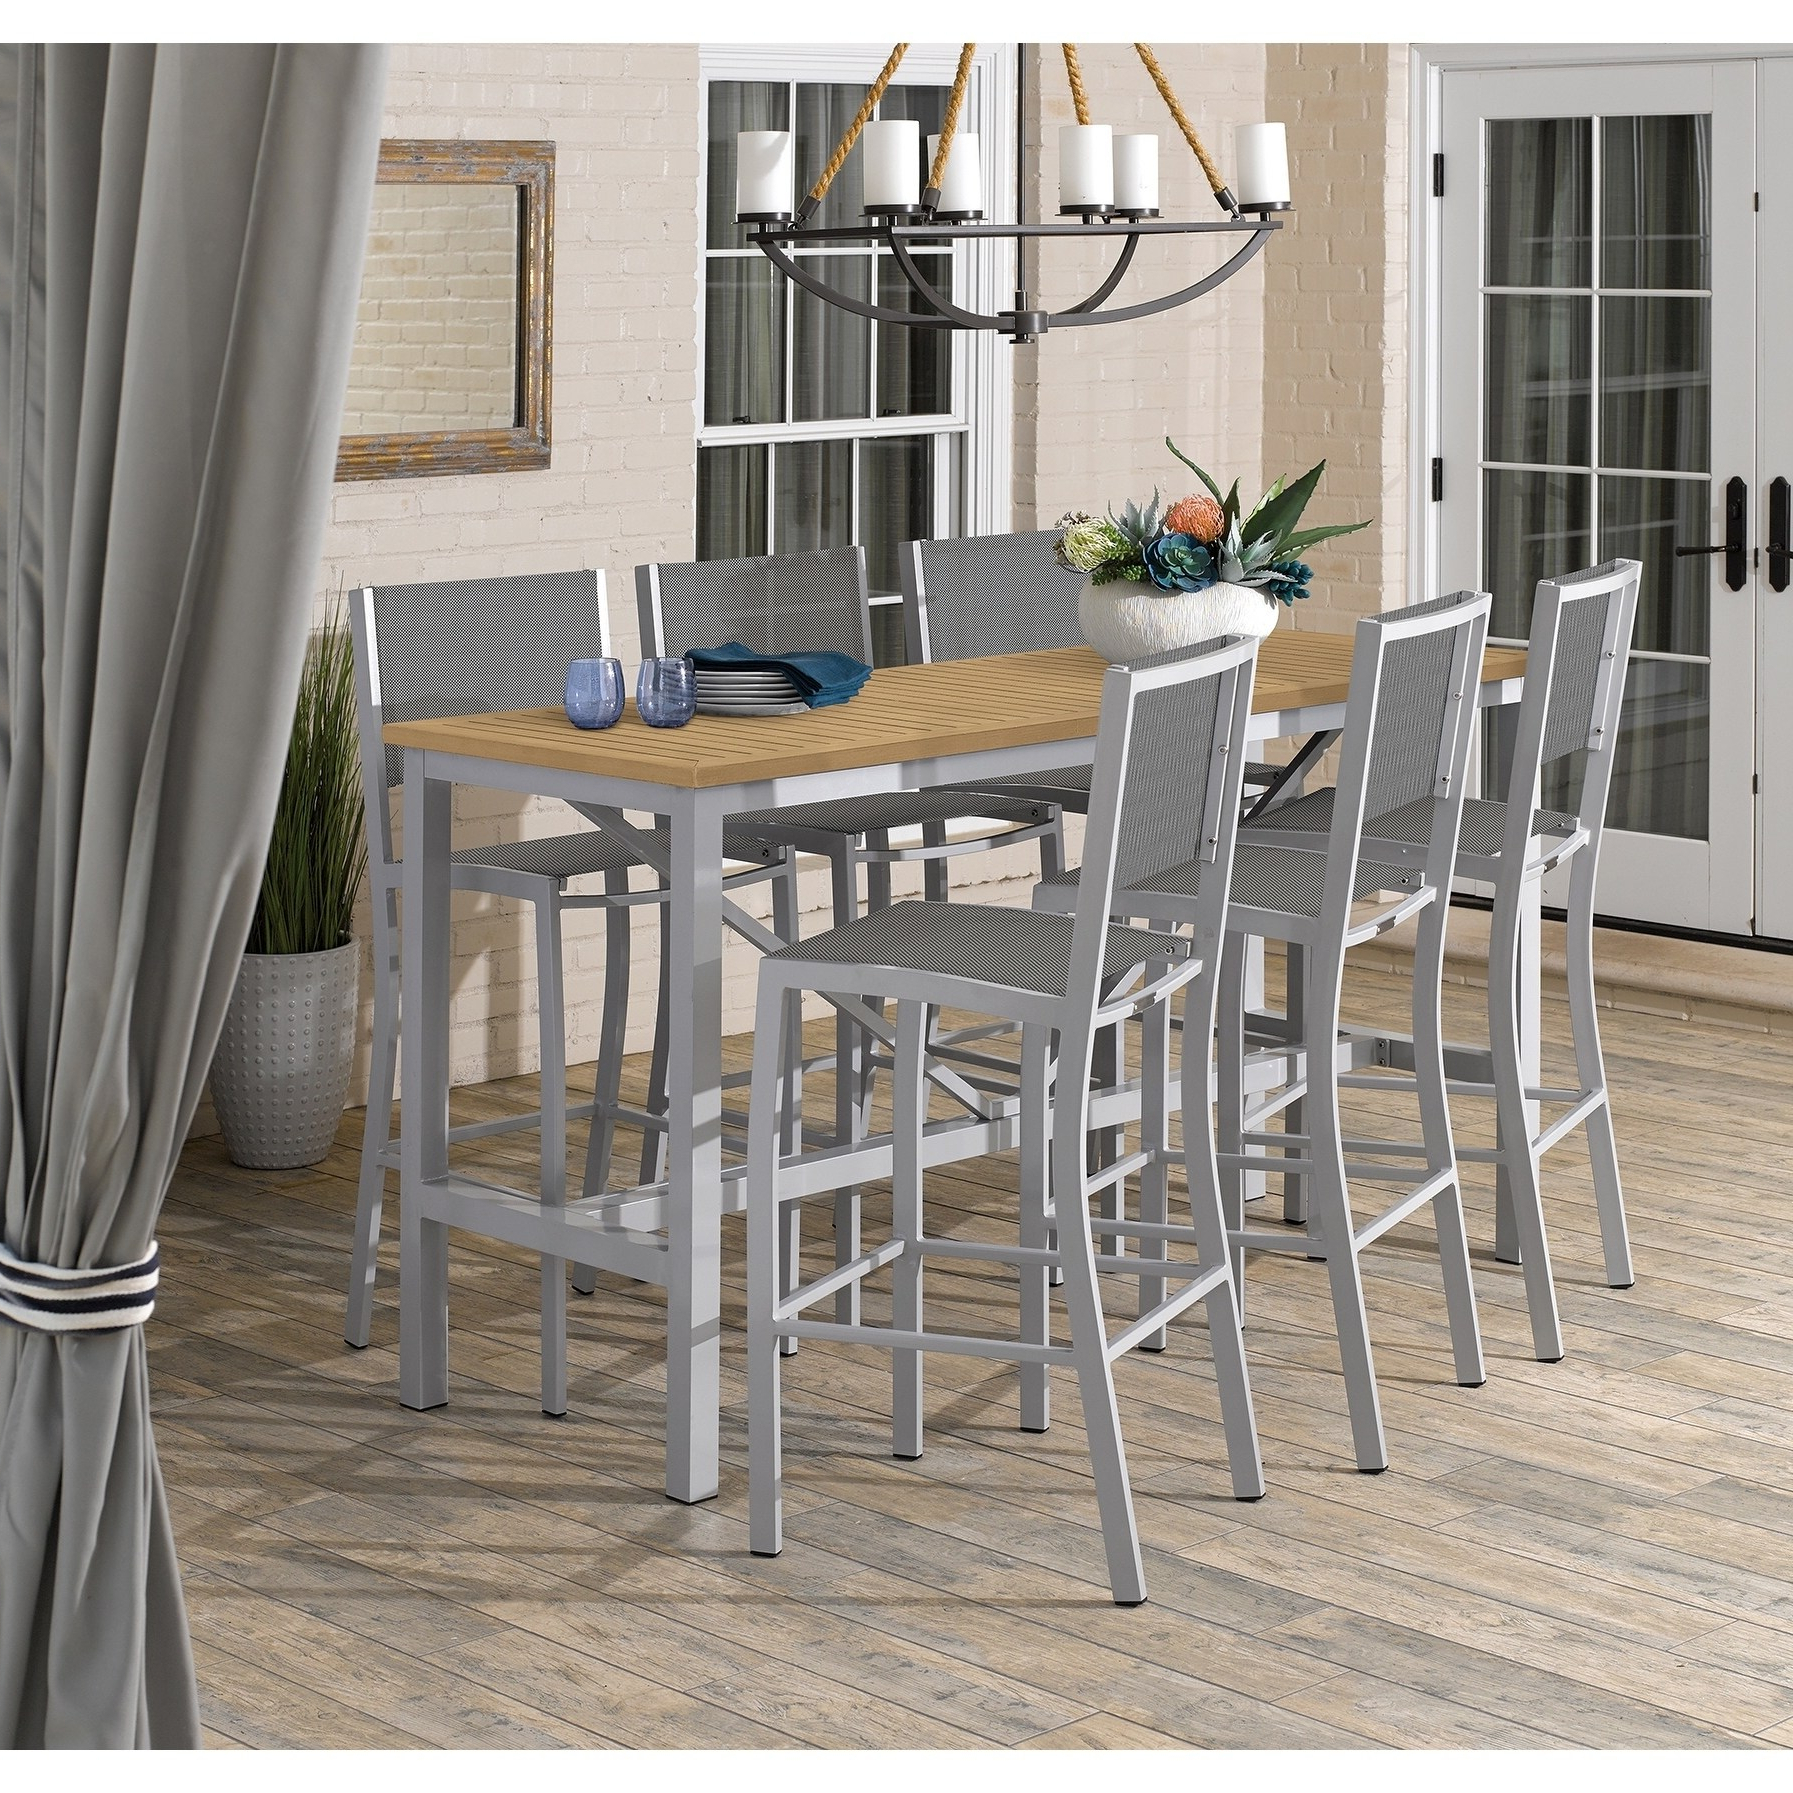 Conover 5 Piece Dining Sets Regarding Fashionable Oxford Garden Travira 7 Piece 72 In X 30 In Tekwood Natural Bar (View 6 of 20)